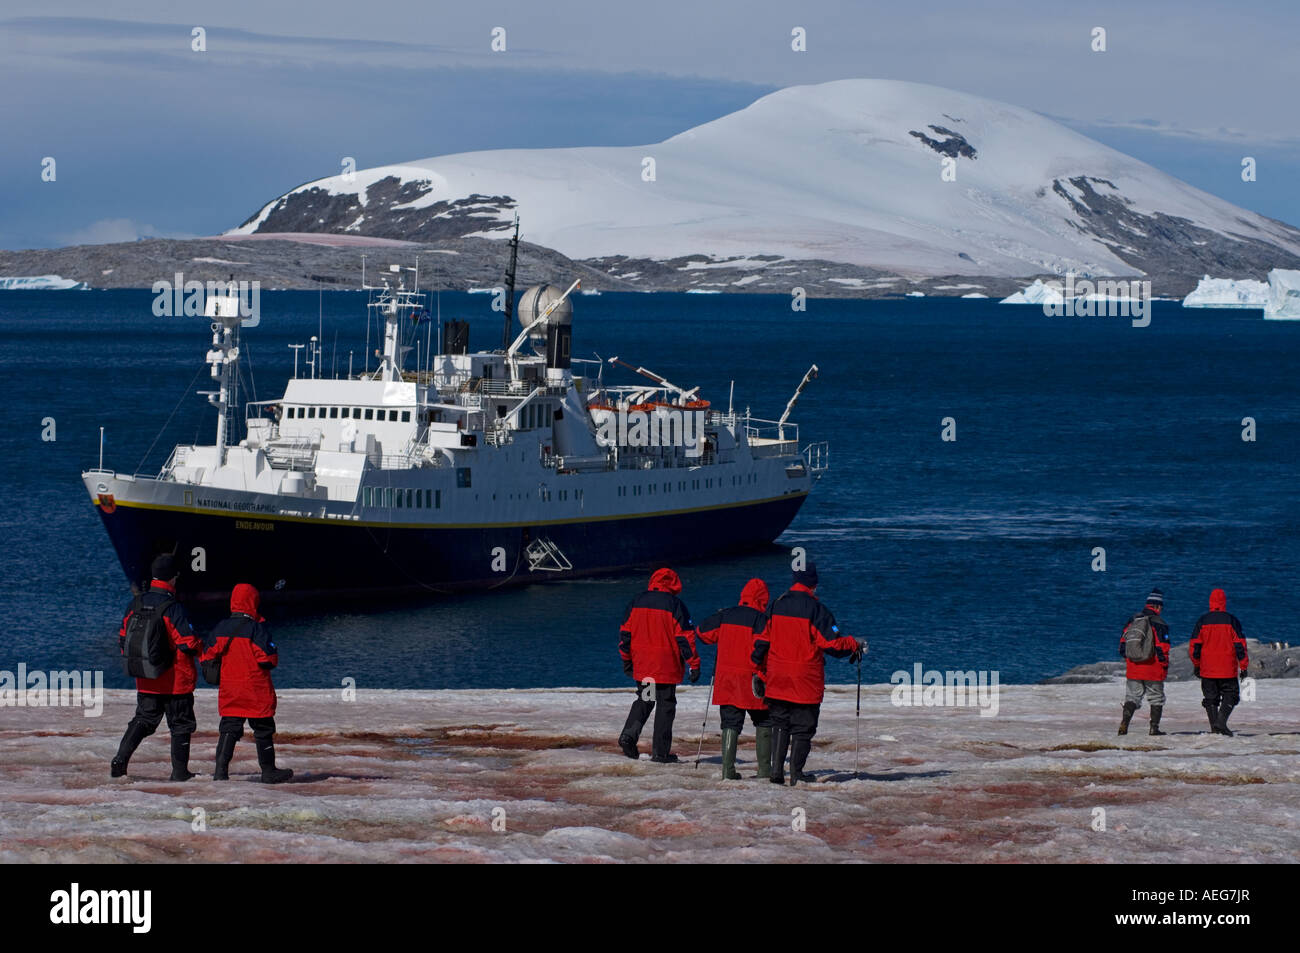 Tourists off the National Geographic expedition ship Endeavor check out a gentoo penguin colony Western Antartica - Stock Image